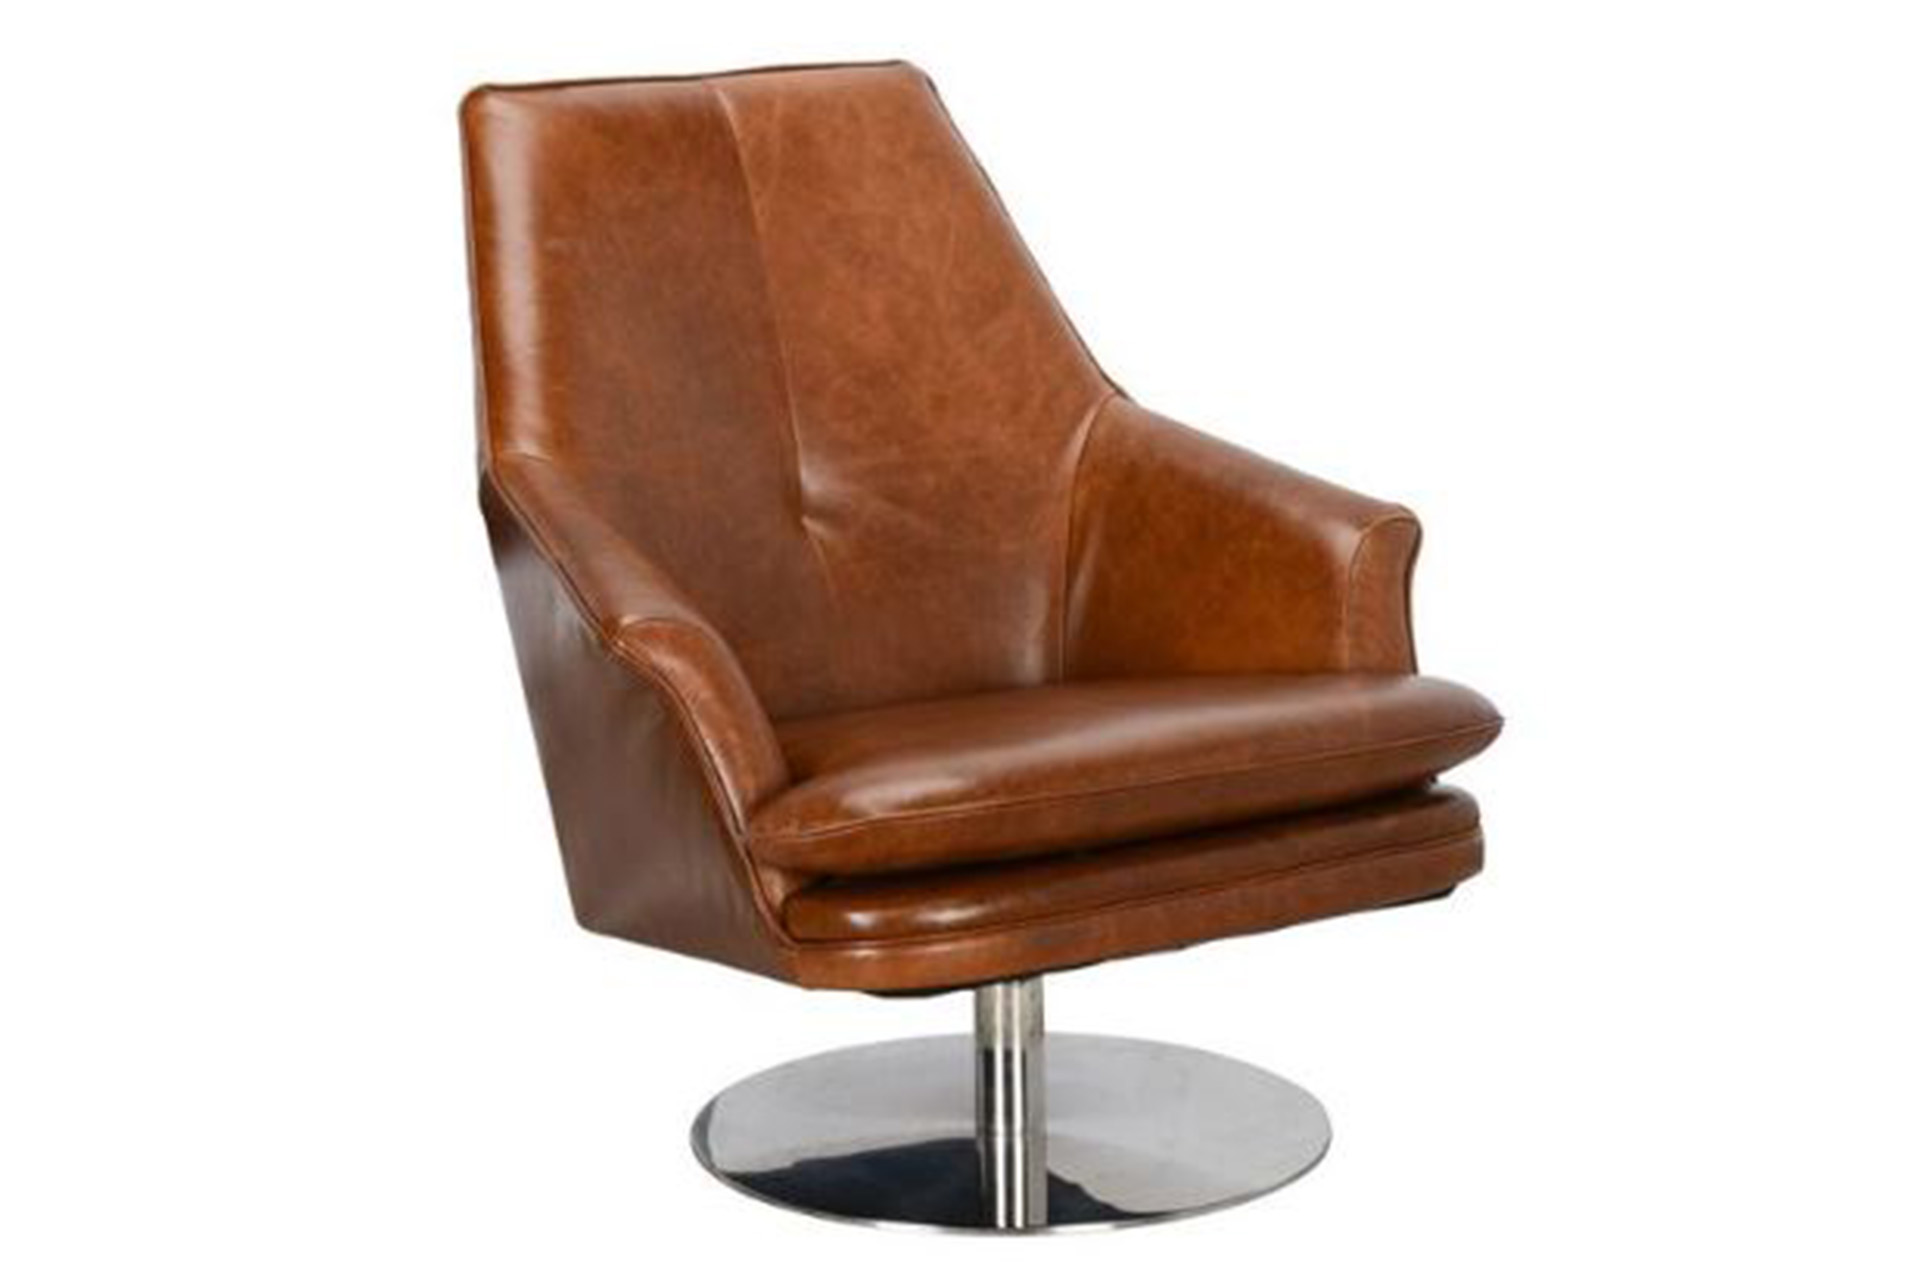 Lovely Swivel Tobacco Leather Chair   360 Elements